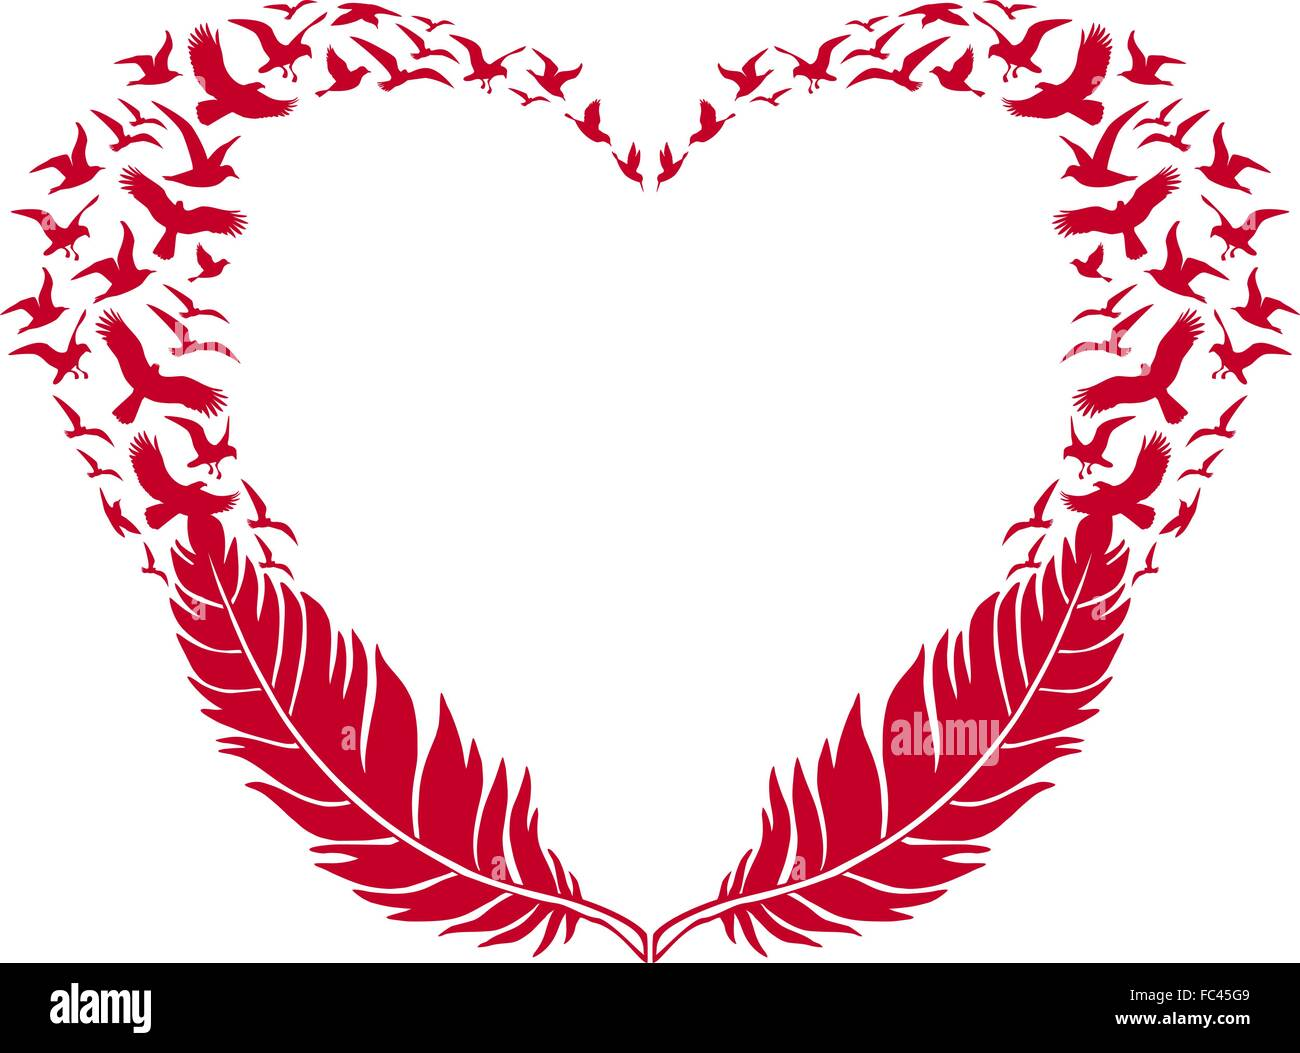 red heart with feathers and flying birds, vector illustration for Valentine's day - Stock Image